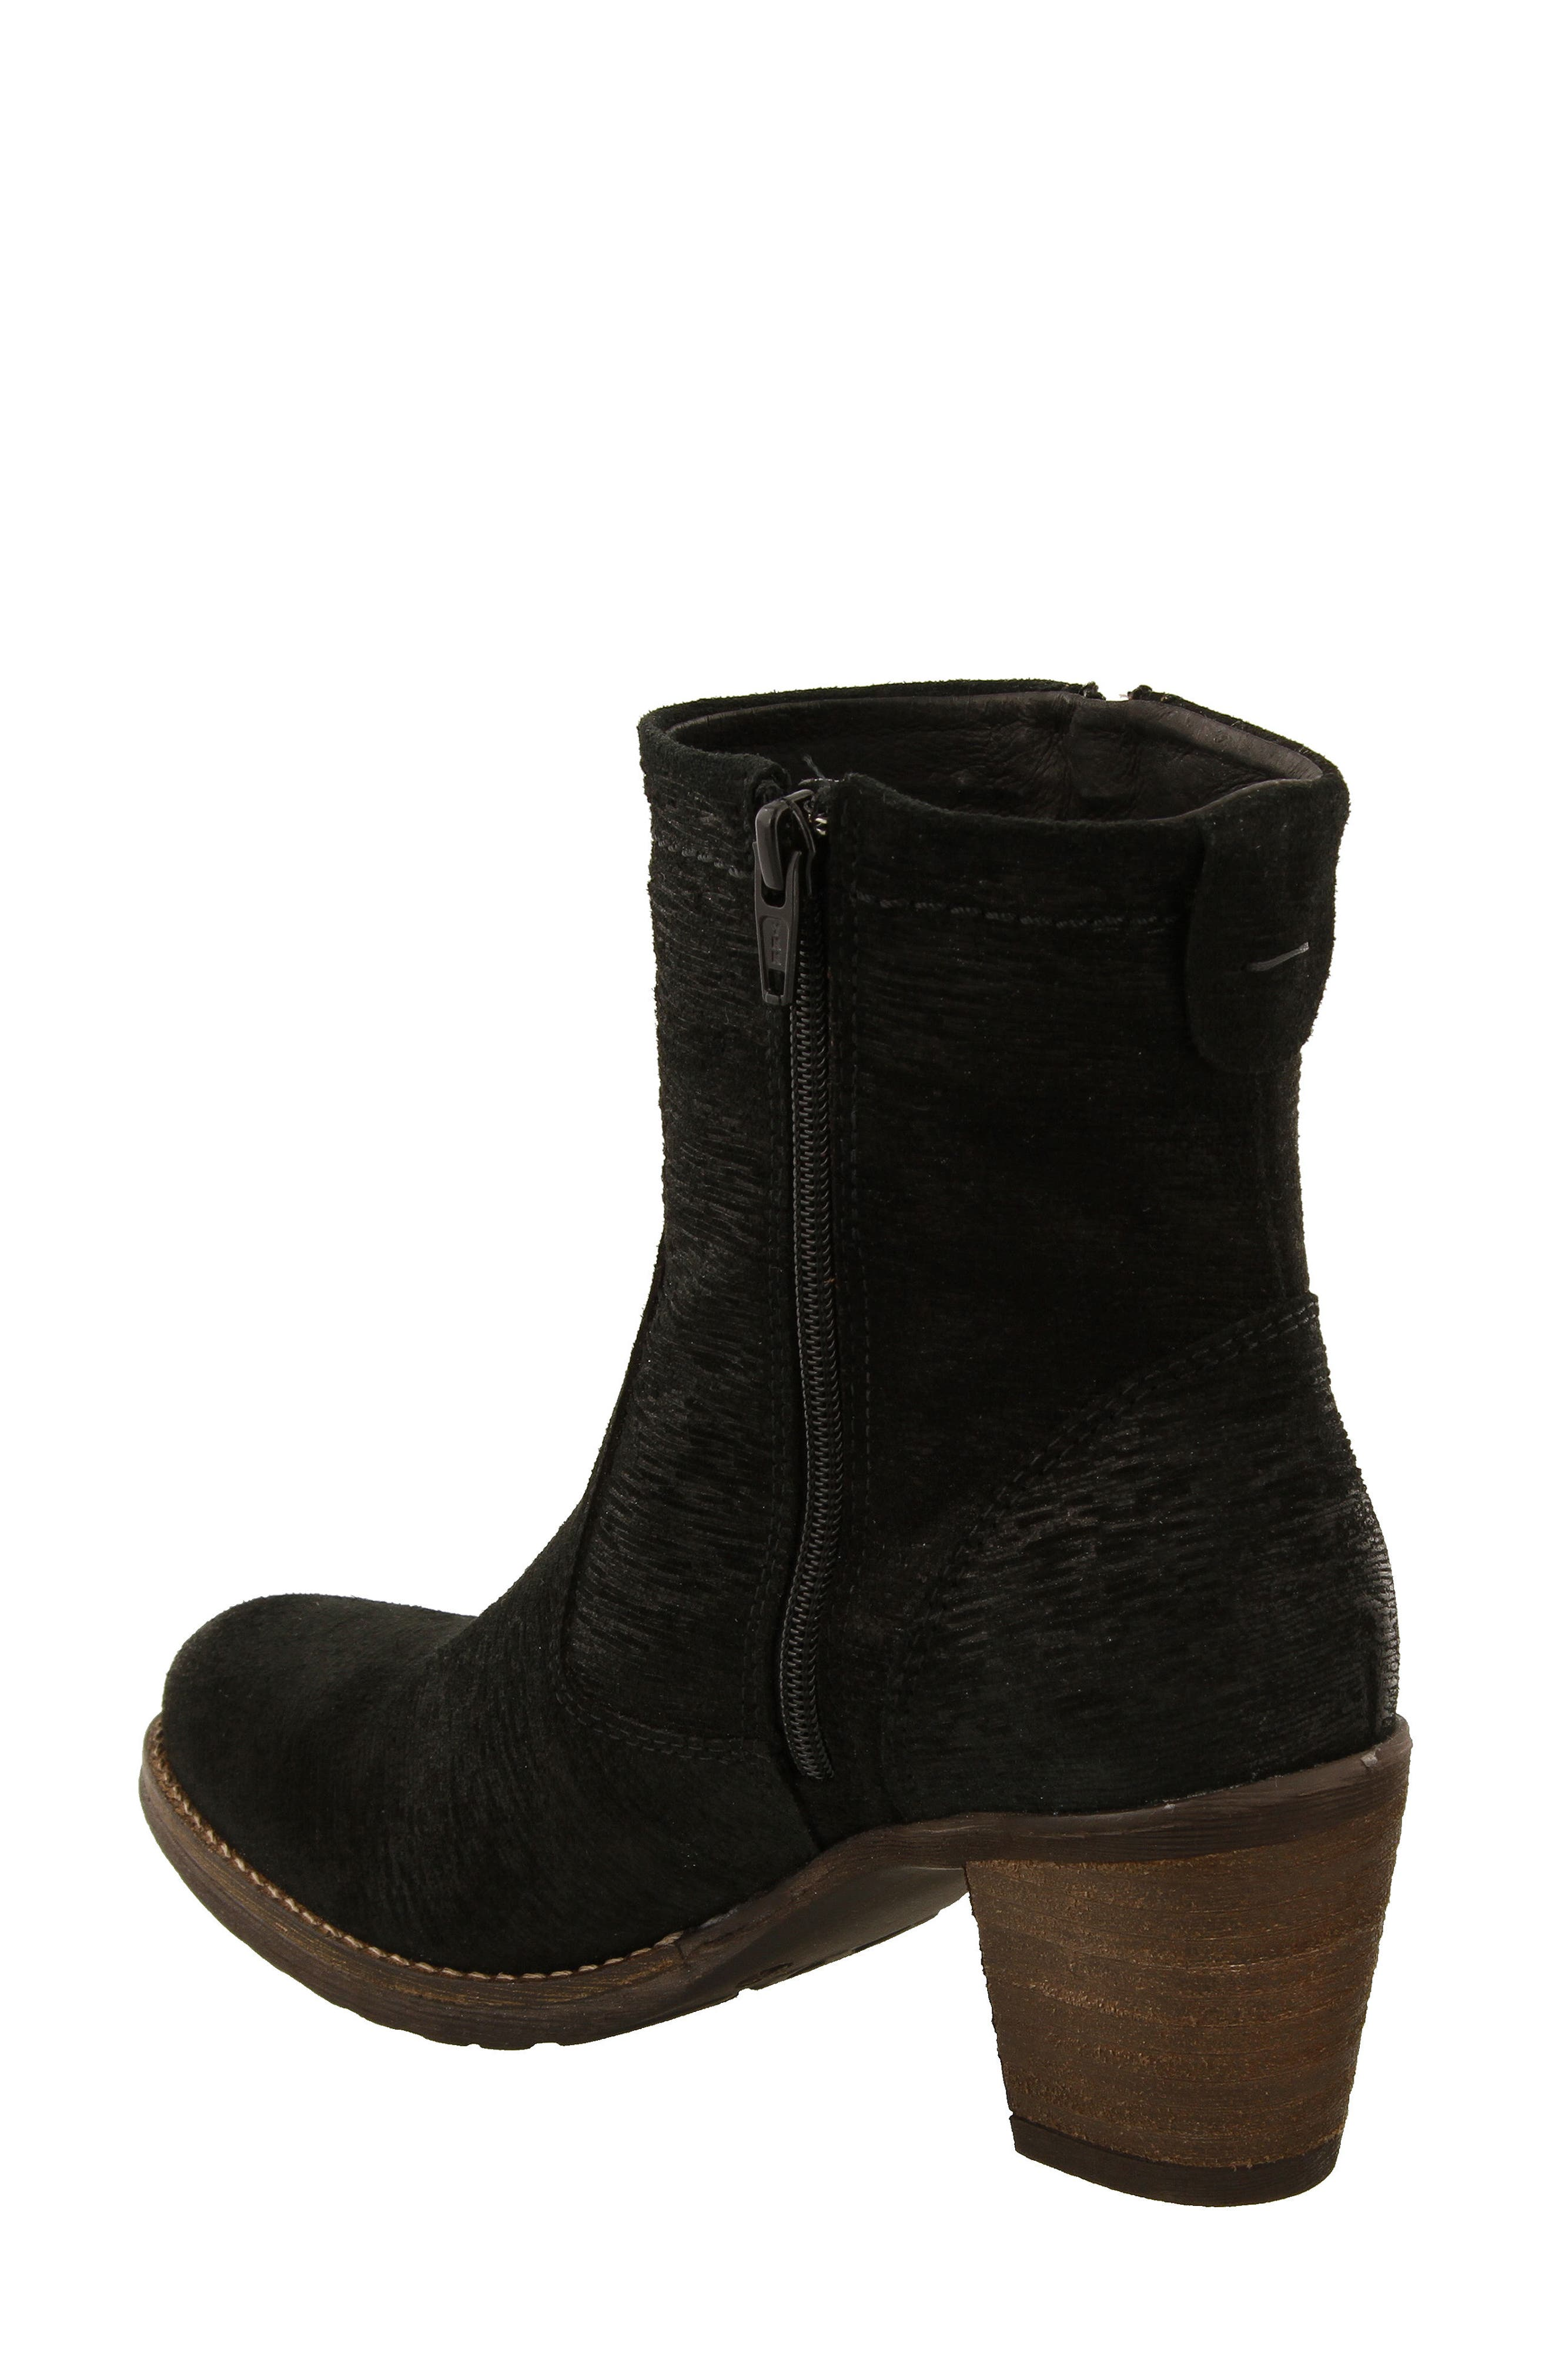 Shaka 2 Embossed Faux Fur Lined Bootie,                             Alternate thumbnail 2, color,                             BLACK EMBOSS SUEDE